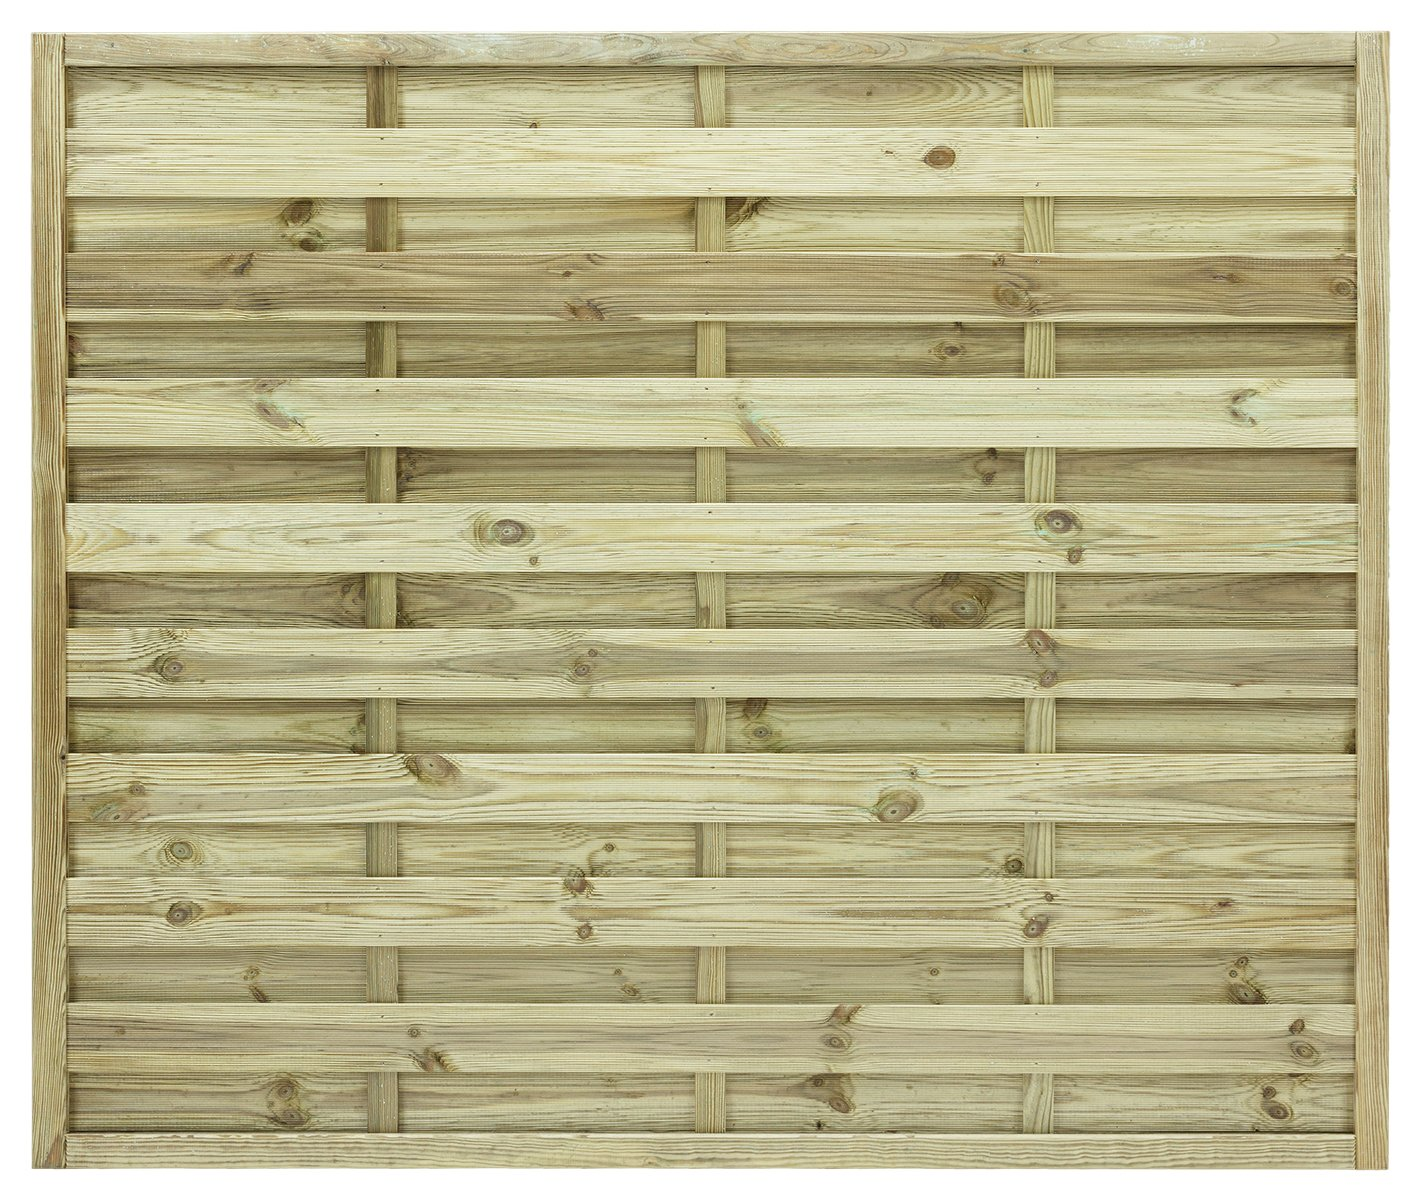 Image of Grange 1.5m St Espirit Square Fence Panel - Pack of 3.